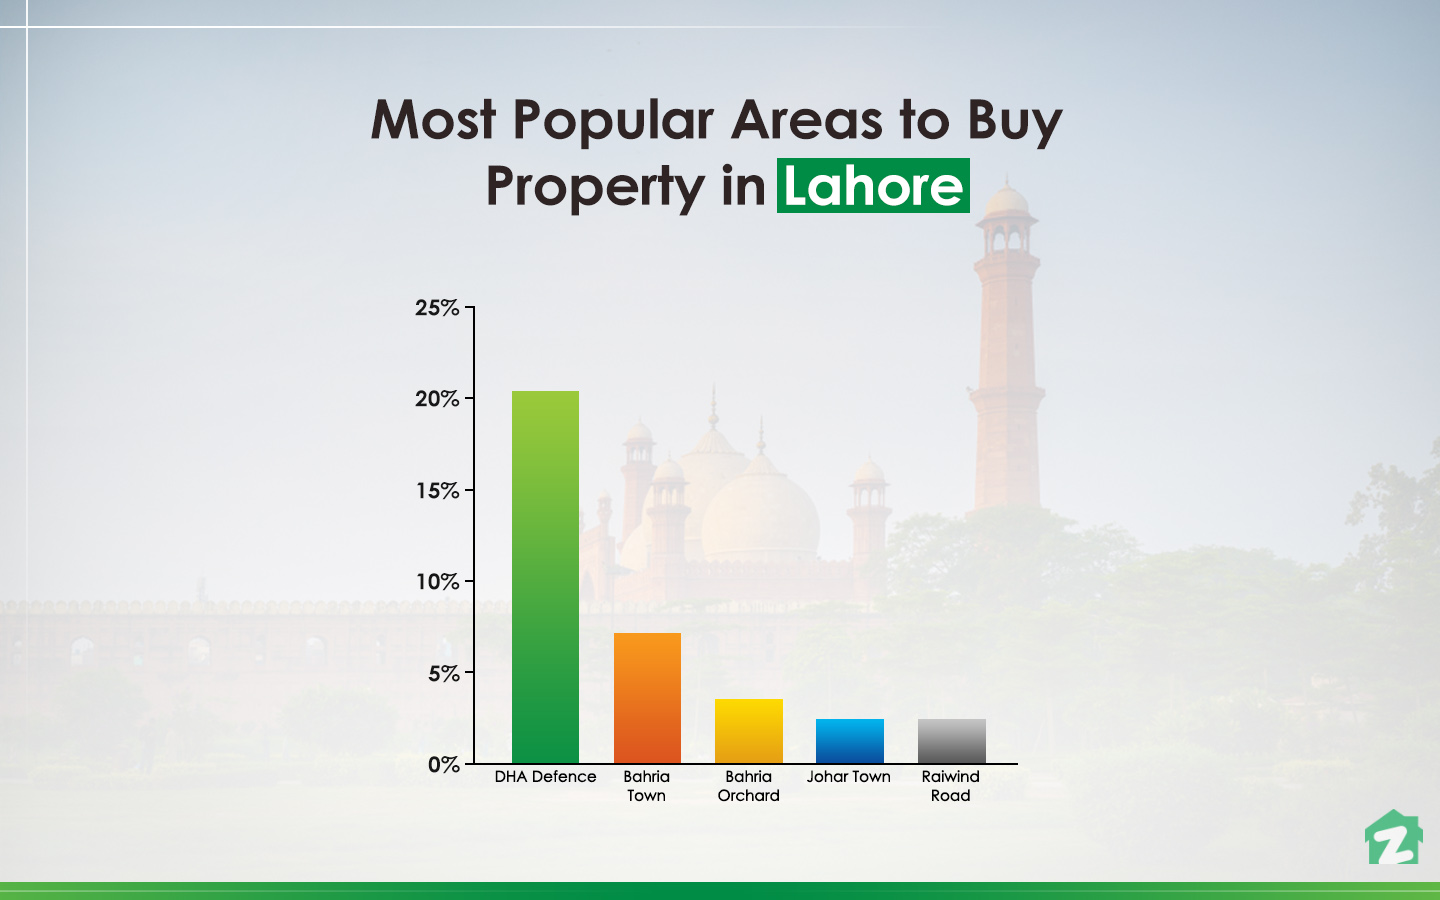 famous areas in Lahore for buying properties